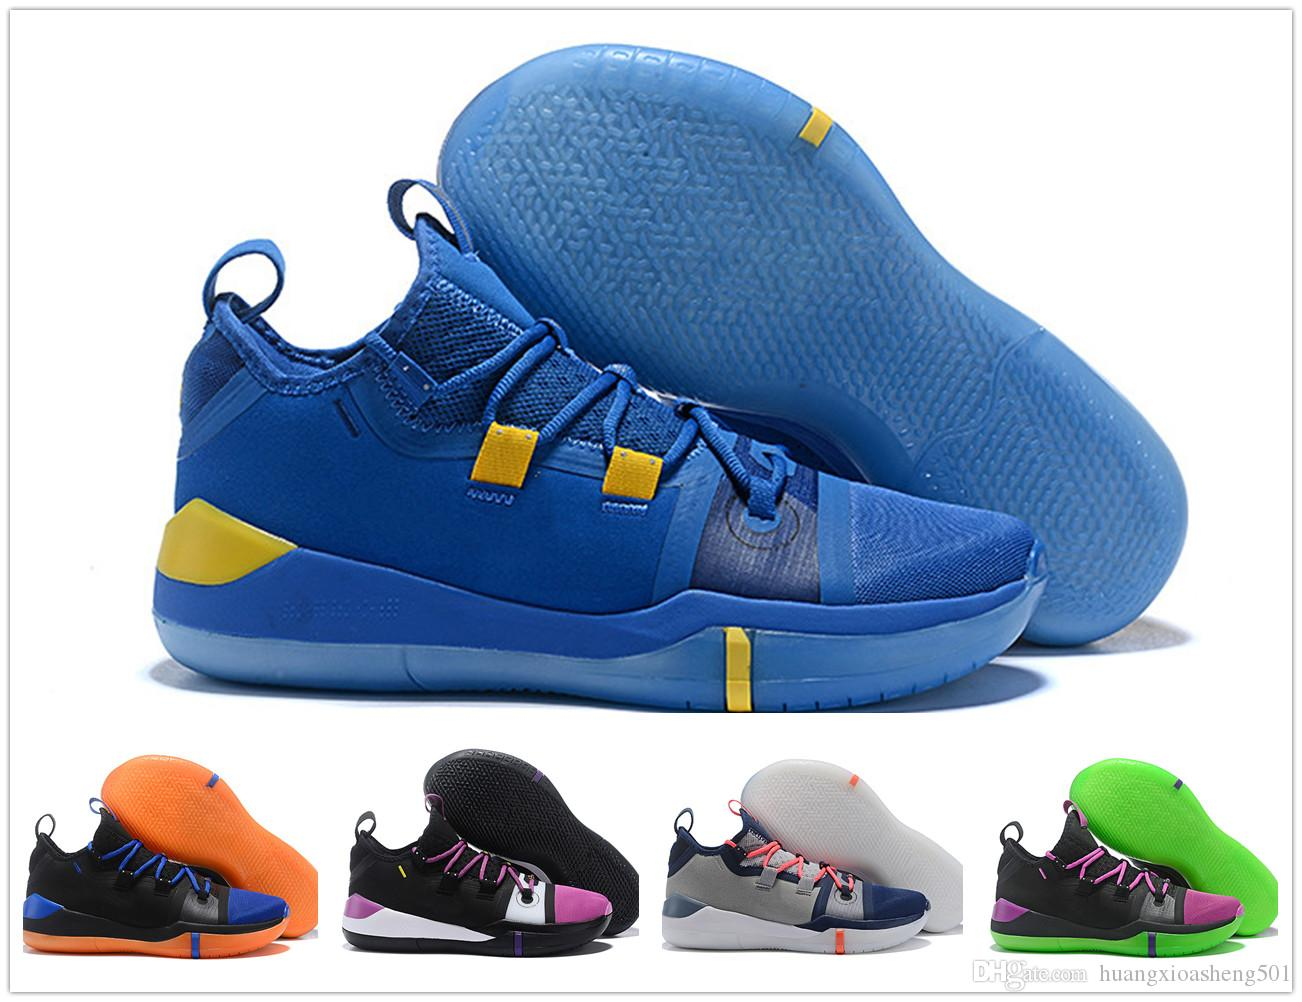 3f6720b5198 2019 2018 New Kobe AD EP Mamba Day Sail Wolf Grey Orange Multicolor  Basketball Shoes For AAA+ Quality Mens Trainers Sports Sneakers Size 7 12  From ...